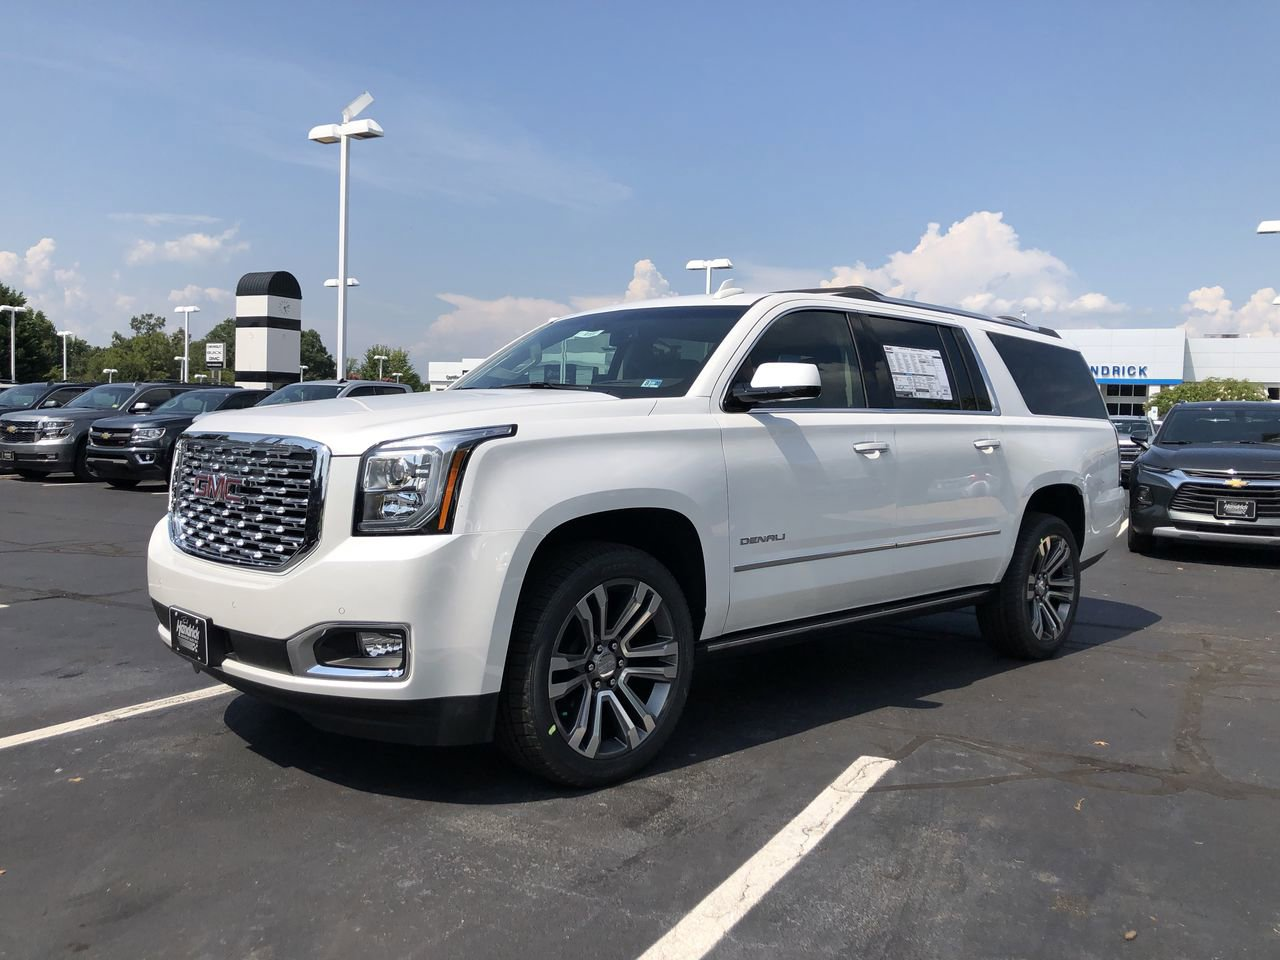 New 2020 GMC Yukon XL Denali